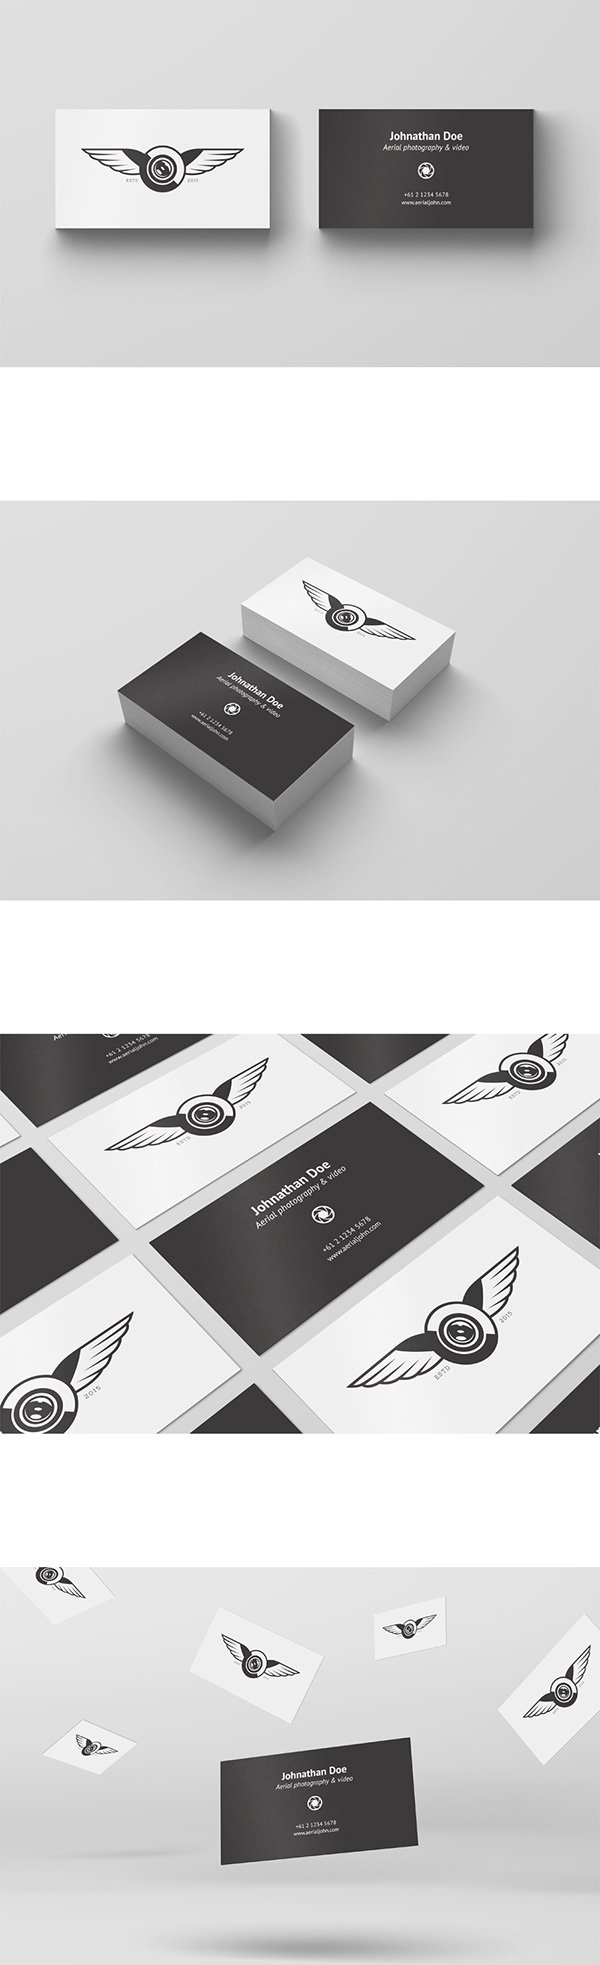 100 High Quality Free PSD Business Card Mock Ups Amits IT Blog